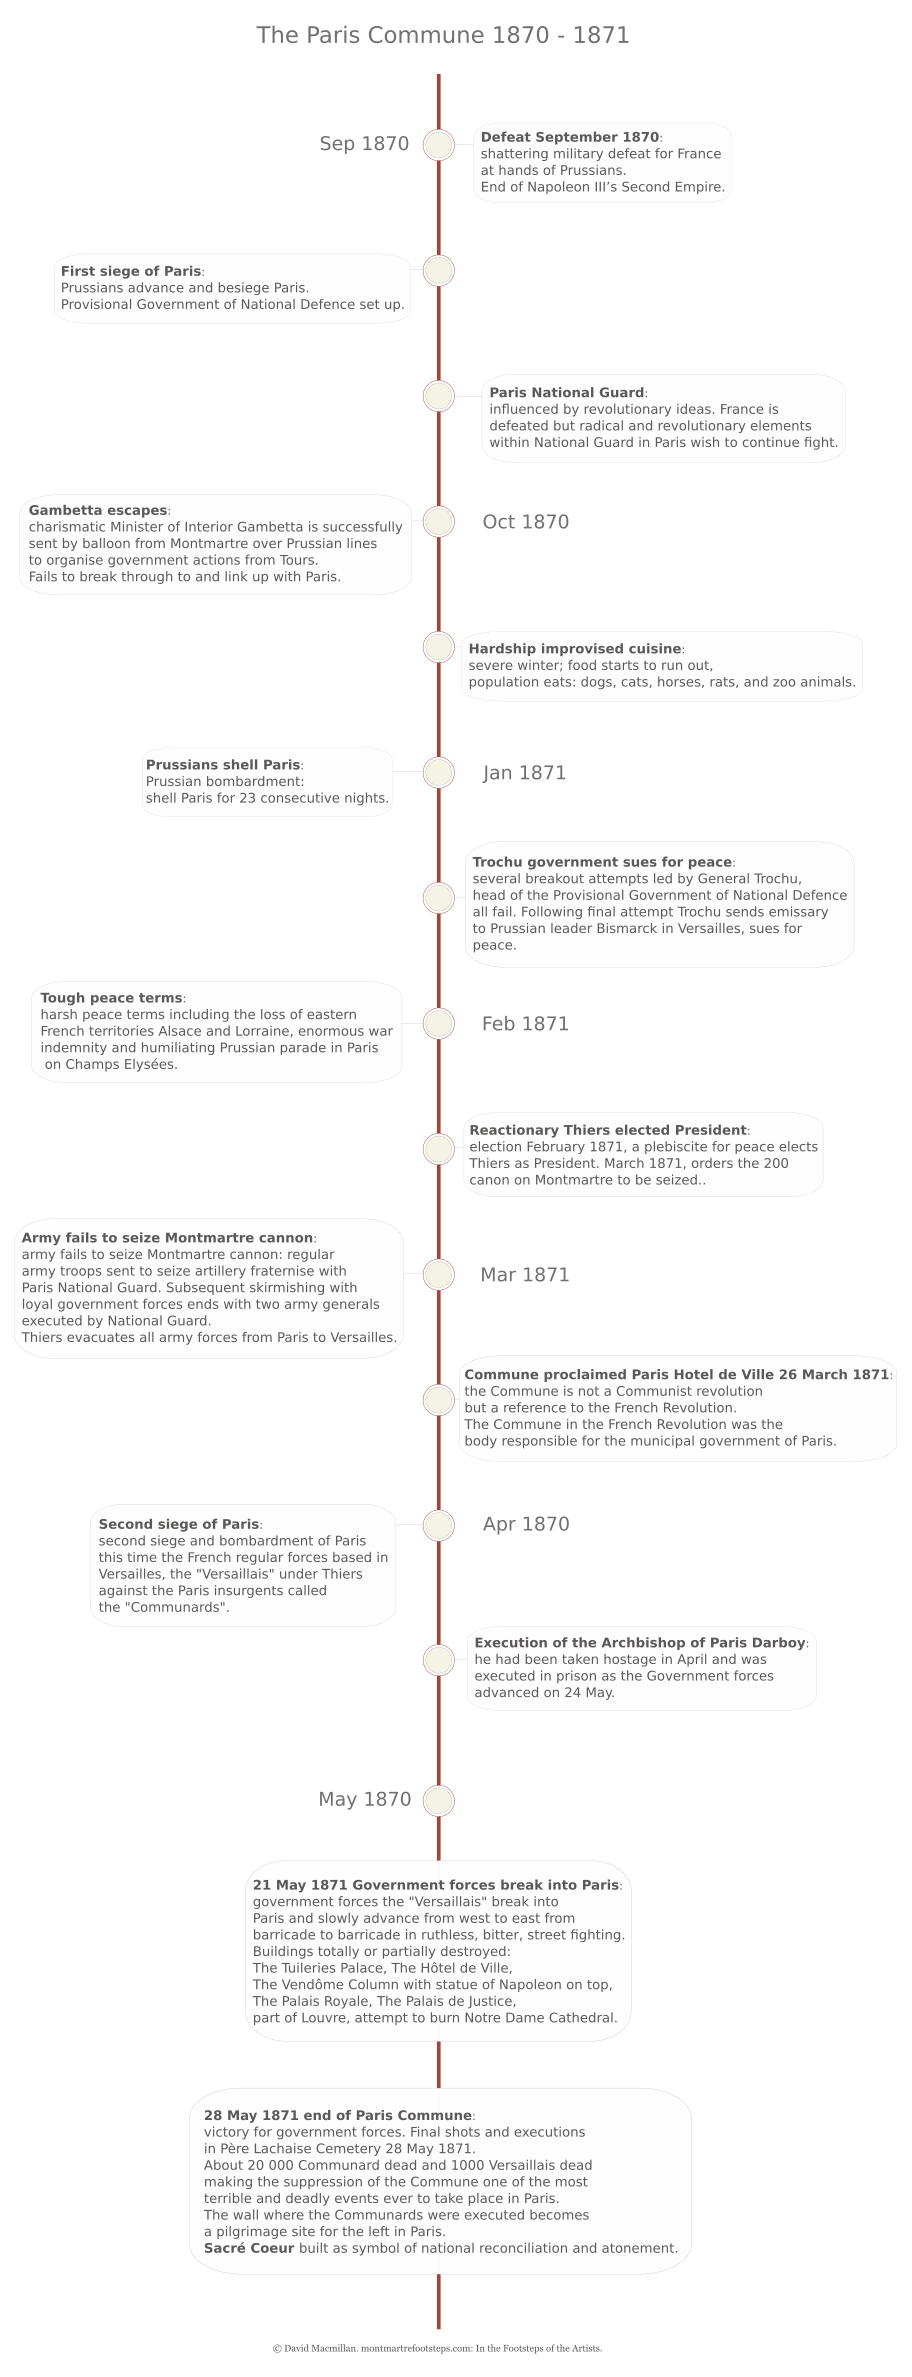 A vertical infographic timeline giving text details of the major events leading up to and including the Paris commune of 1870 to 1871